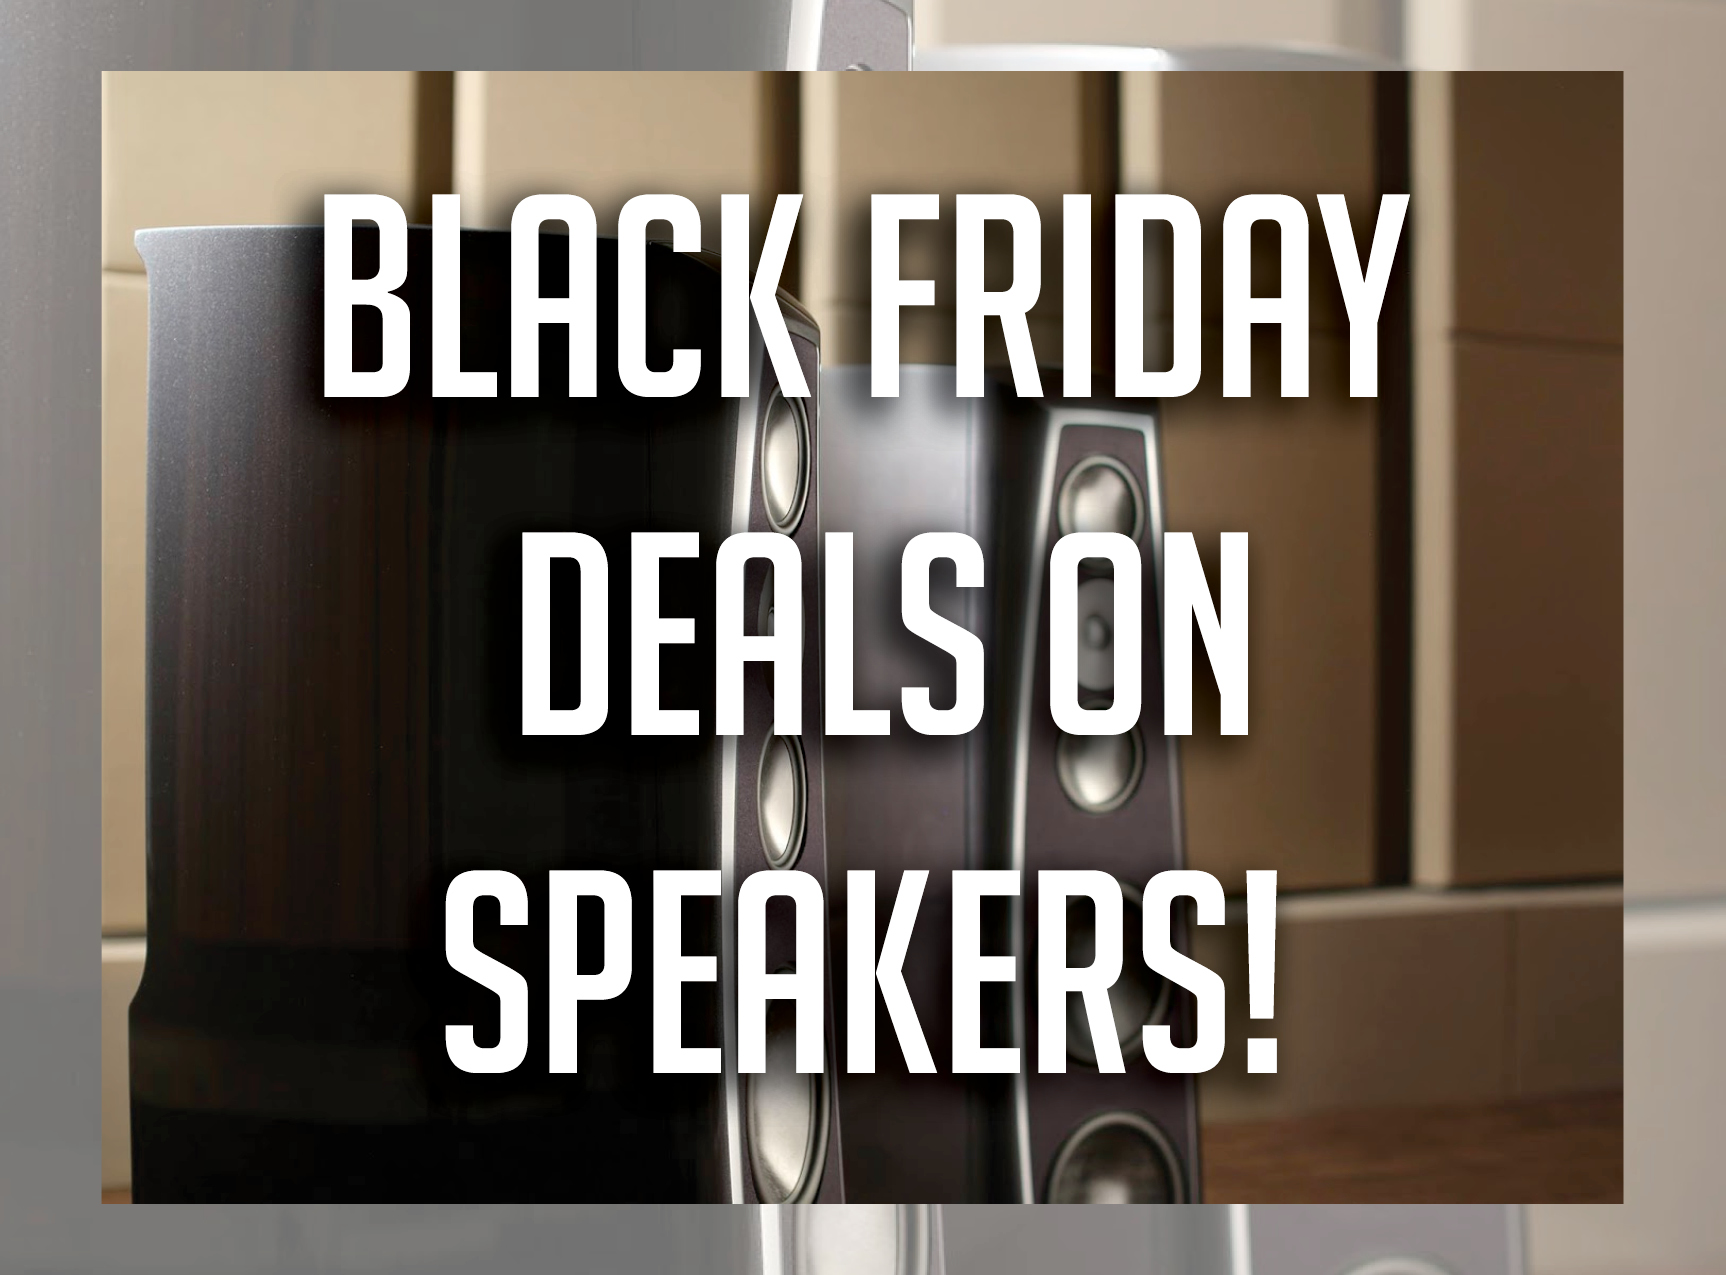 Black Friday Deals on Speakers!